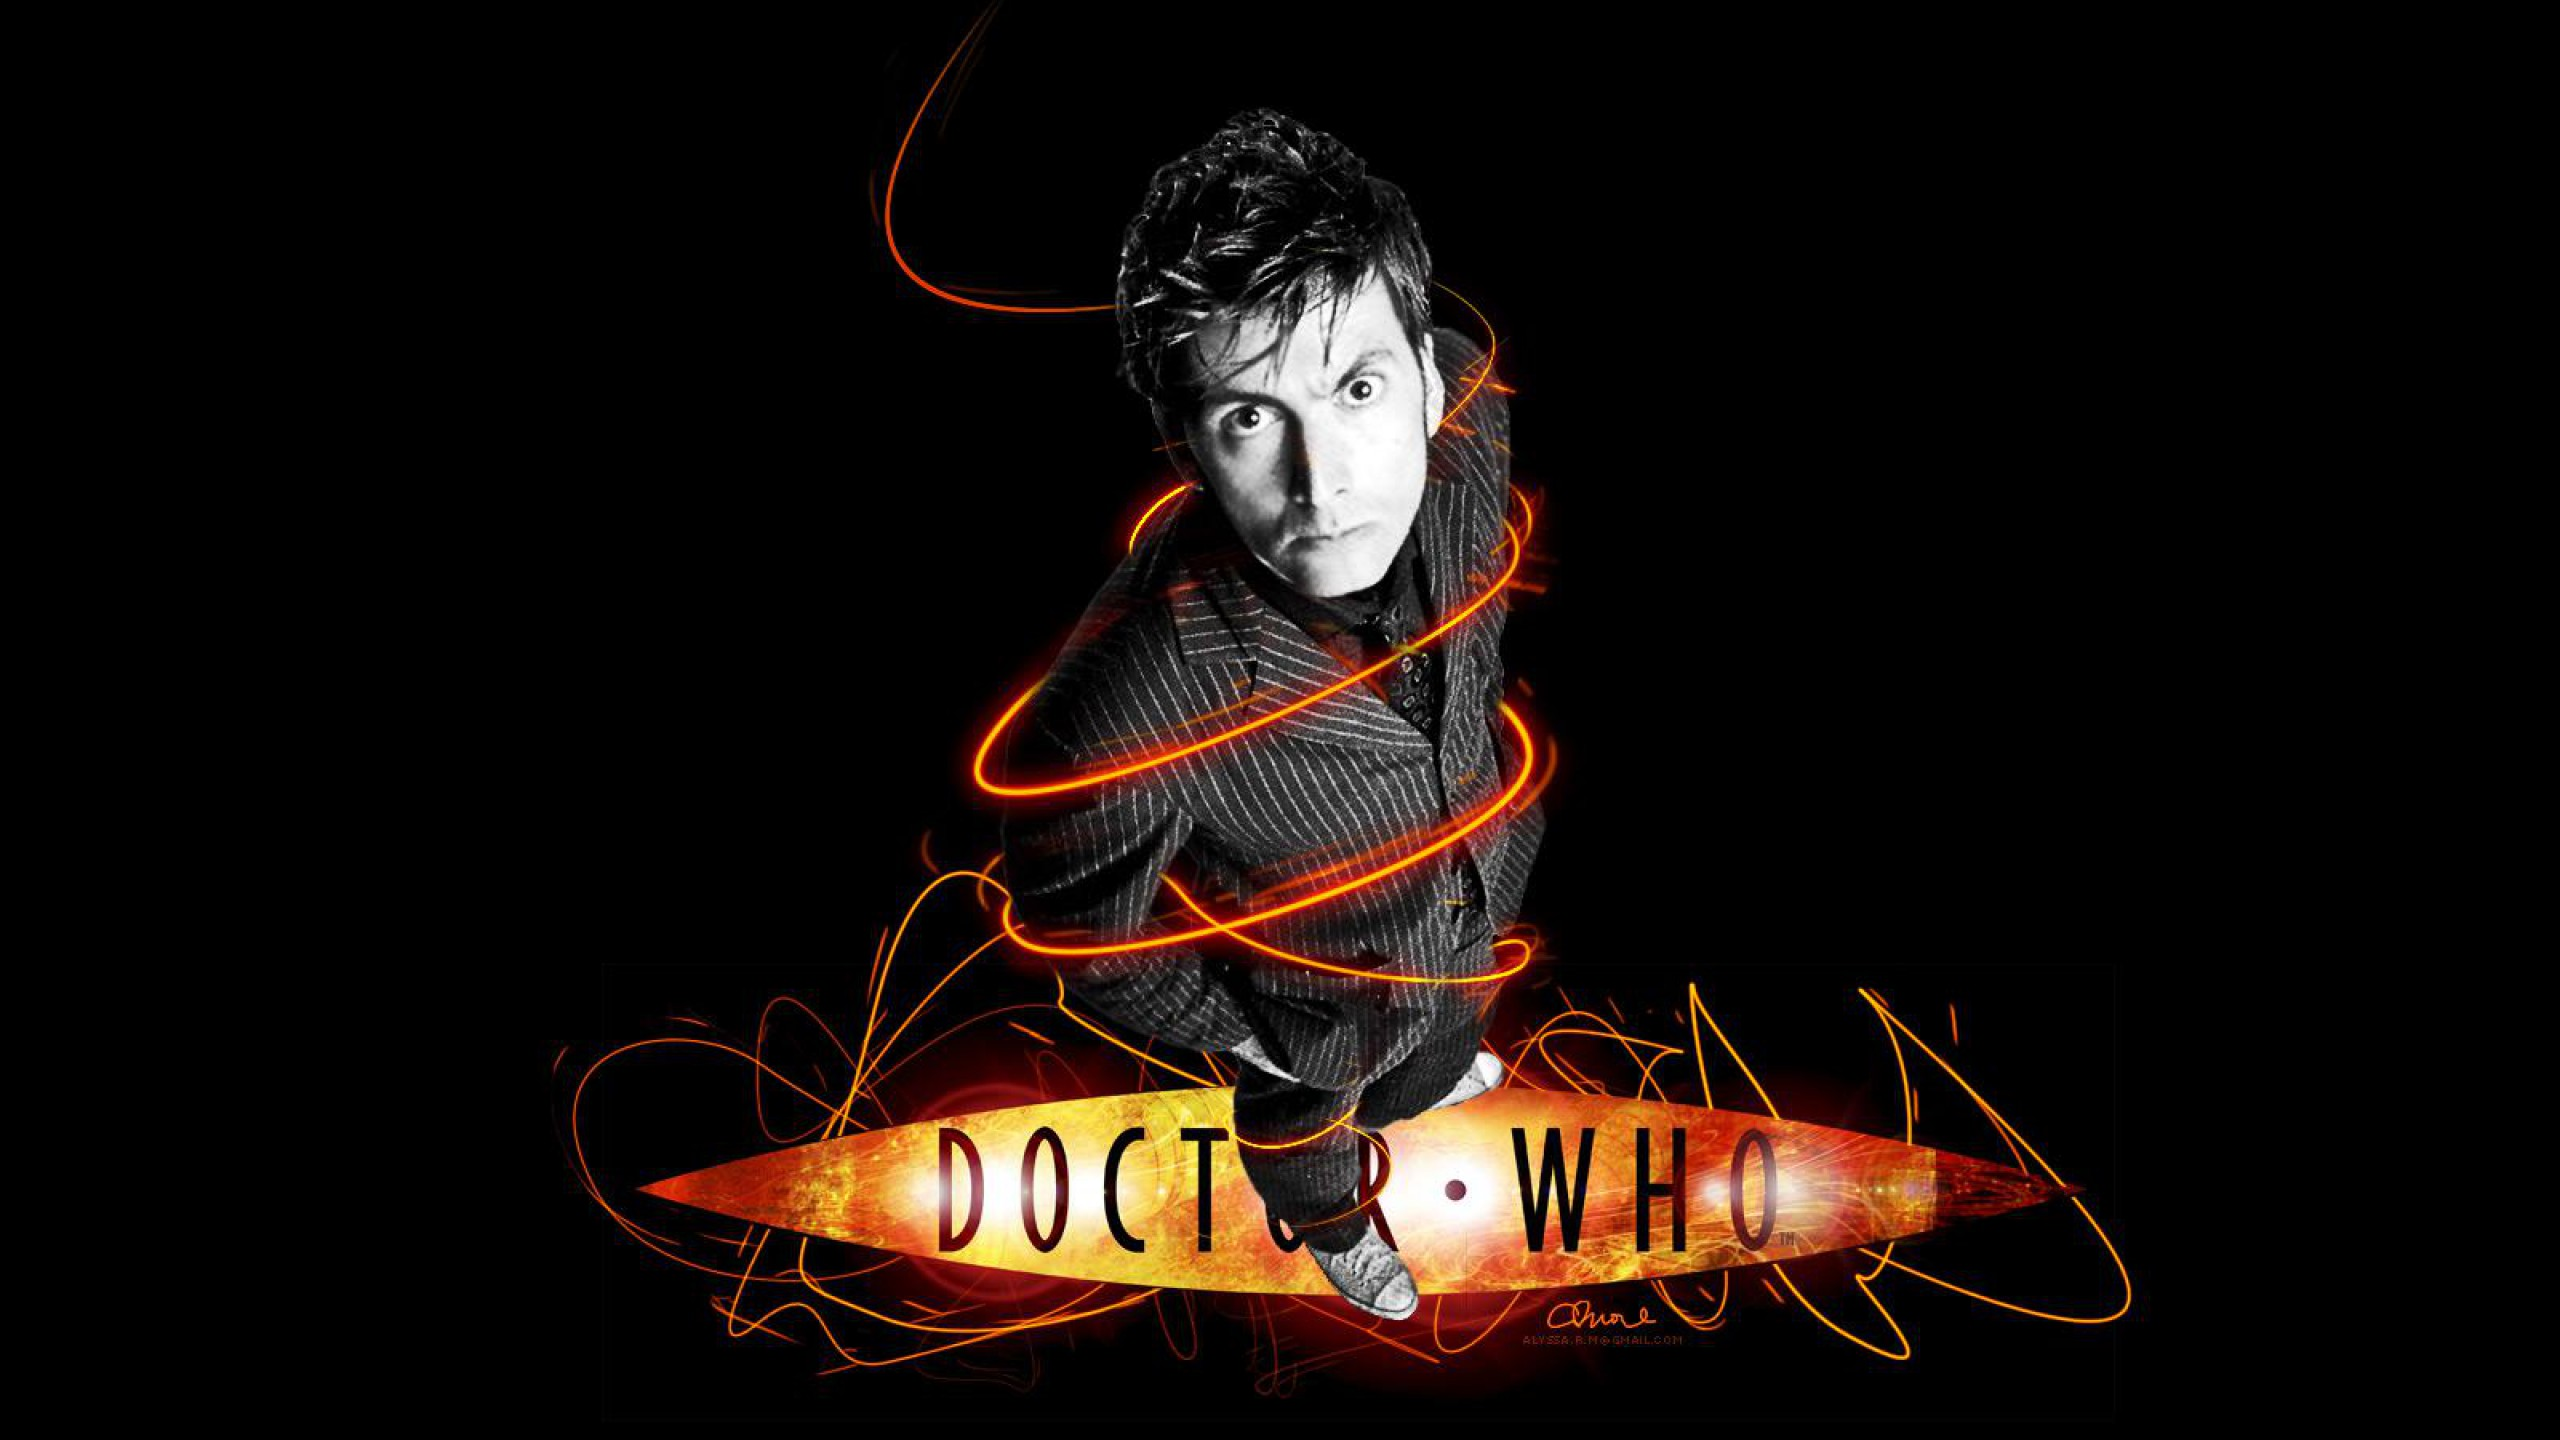 Doctor Who wallpaper 18